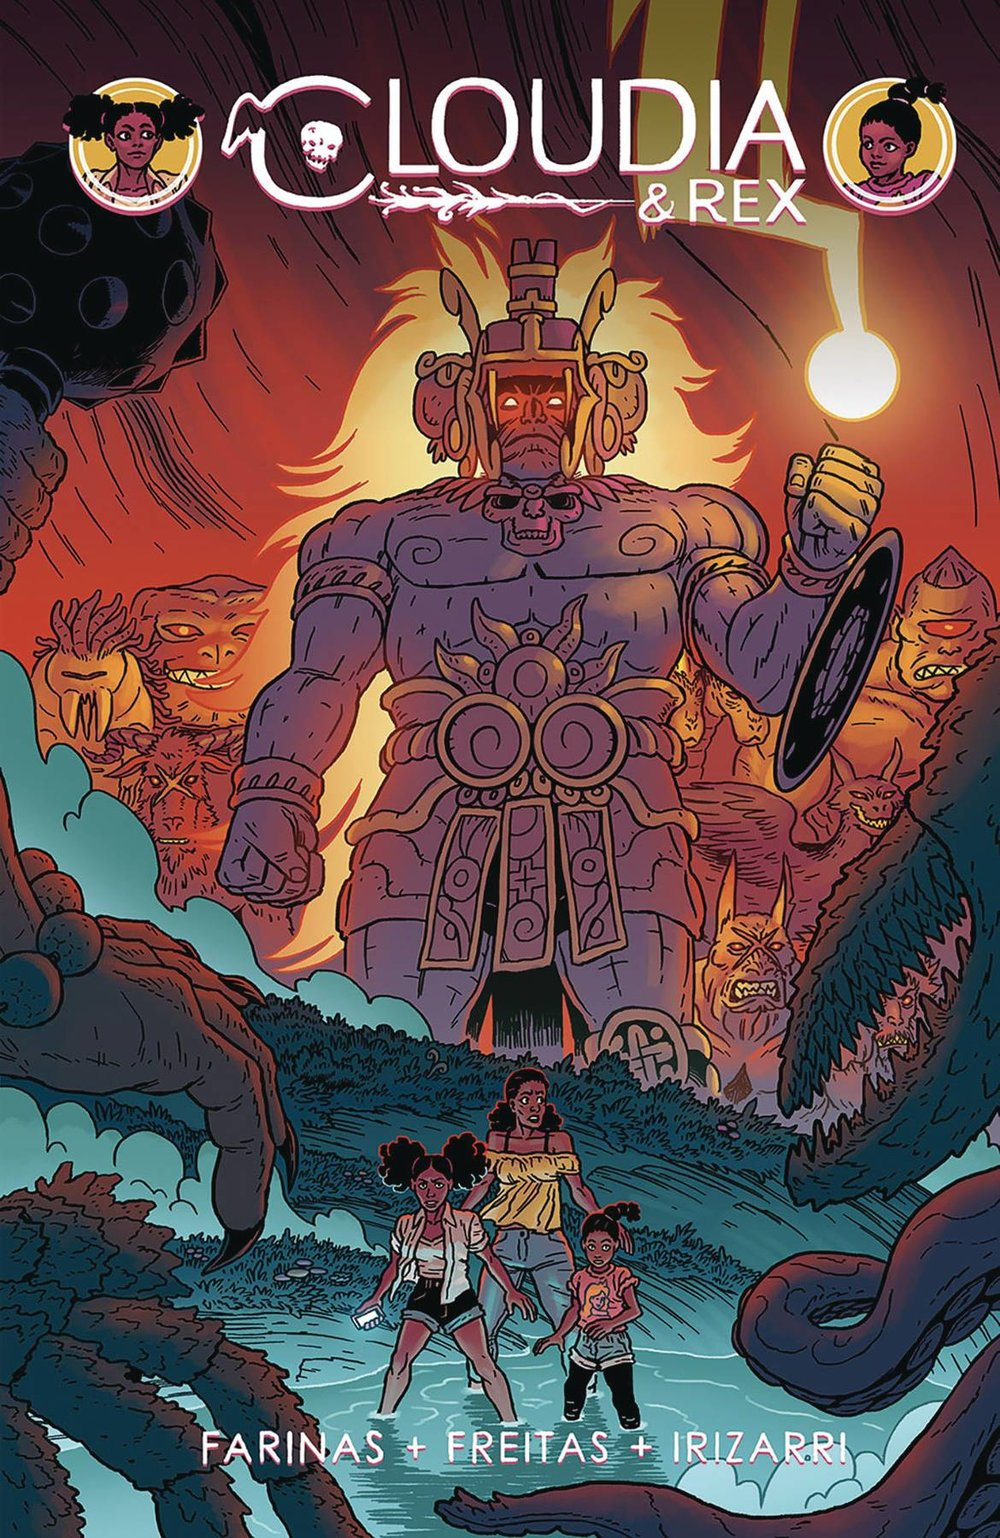 Cloudia & Rex by Erick Freitas, Ulises Farinas, and Daniel Irizarri